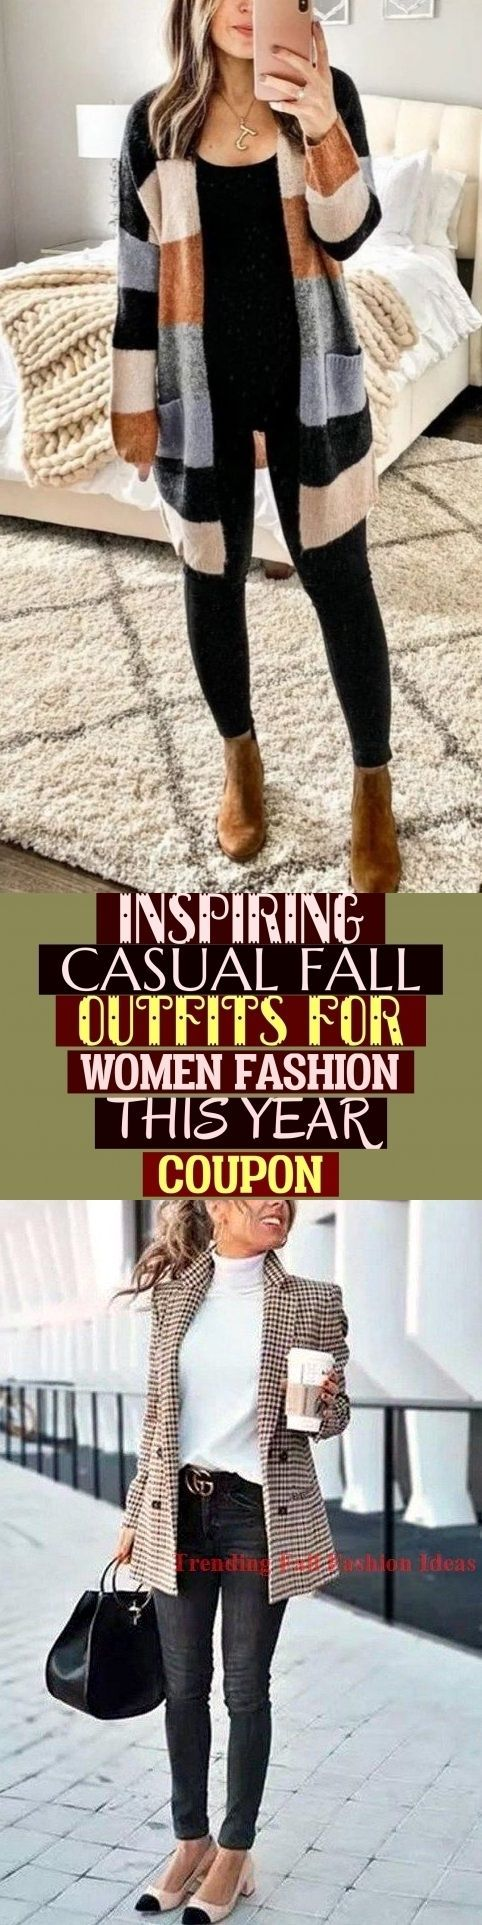 Inspiring Casual Fall Outfits For Women Fashion This Year Coupon ~ #casualoutfits inspirierende lässige herbstoutfits für damenmode der diesjährige gutschein #casualoutfitsSpring #Classiccasualoutfits Inspiring Casual Fall Outfits For Women Fashion This Year Coupon ~ casual outfits Modest; casual outfits For Church; casual outfits Primavera #herbstoutfitdamen Inspiring Casual Fall Outfits For Women Fashion This Year Coupon ~ #casualoutfits inspirierende lässige herbstoutfits für damenmode d #herbstoutfitdamen